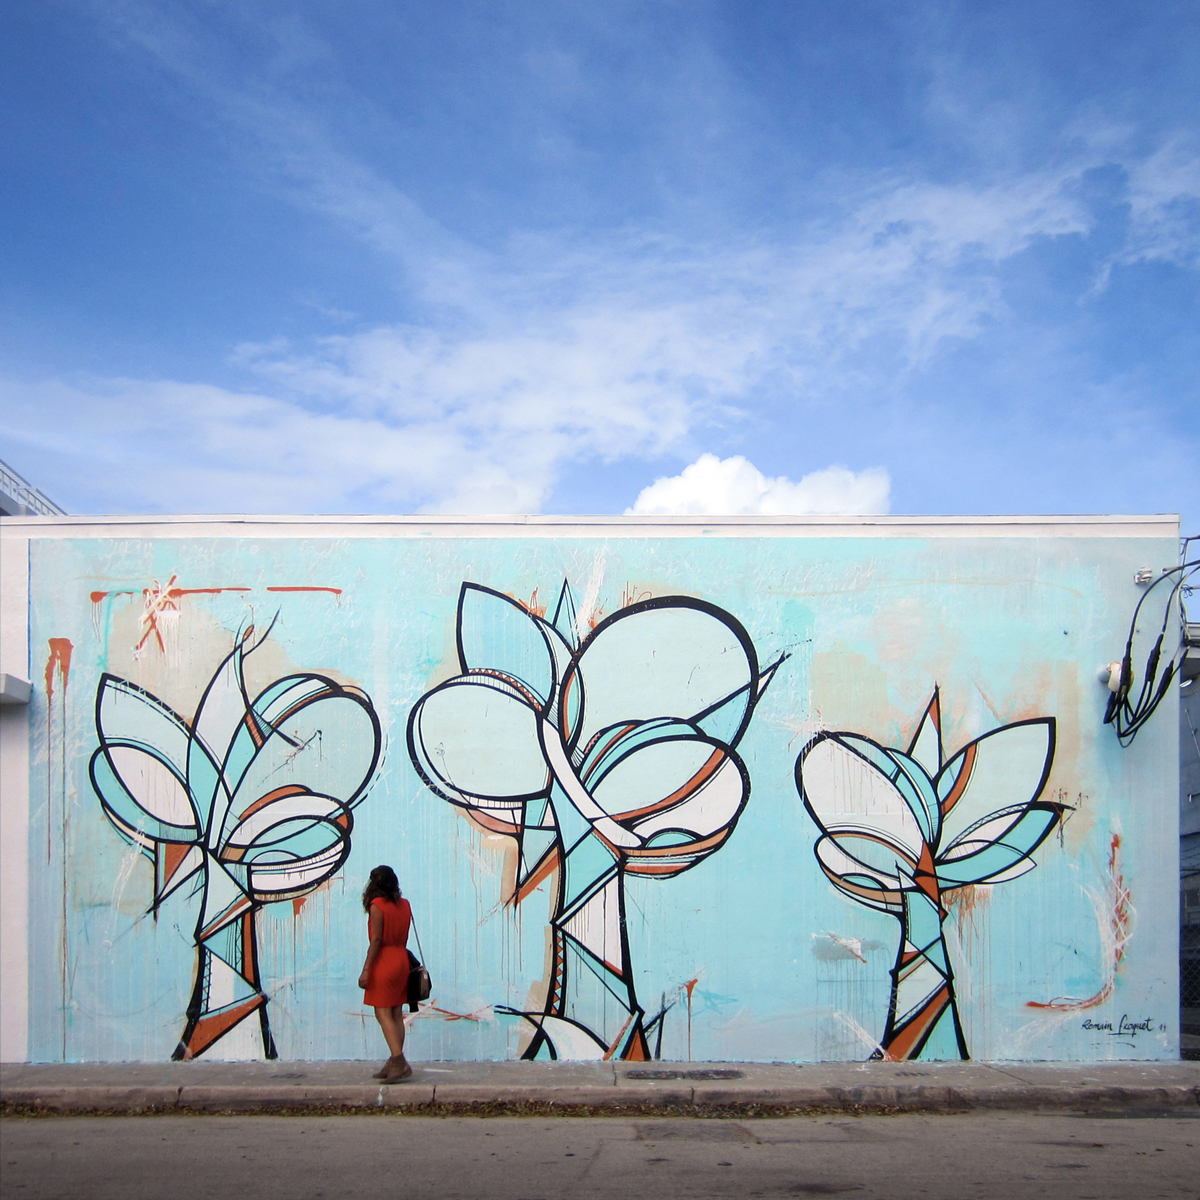 Romain Froquet Trees, Miami, Wynwood district, 2014